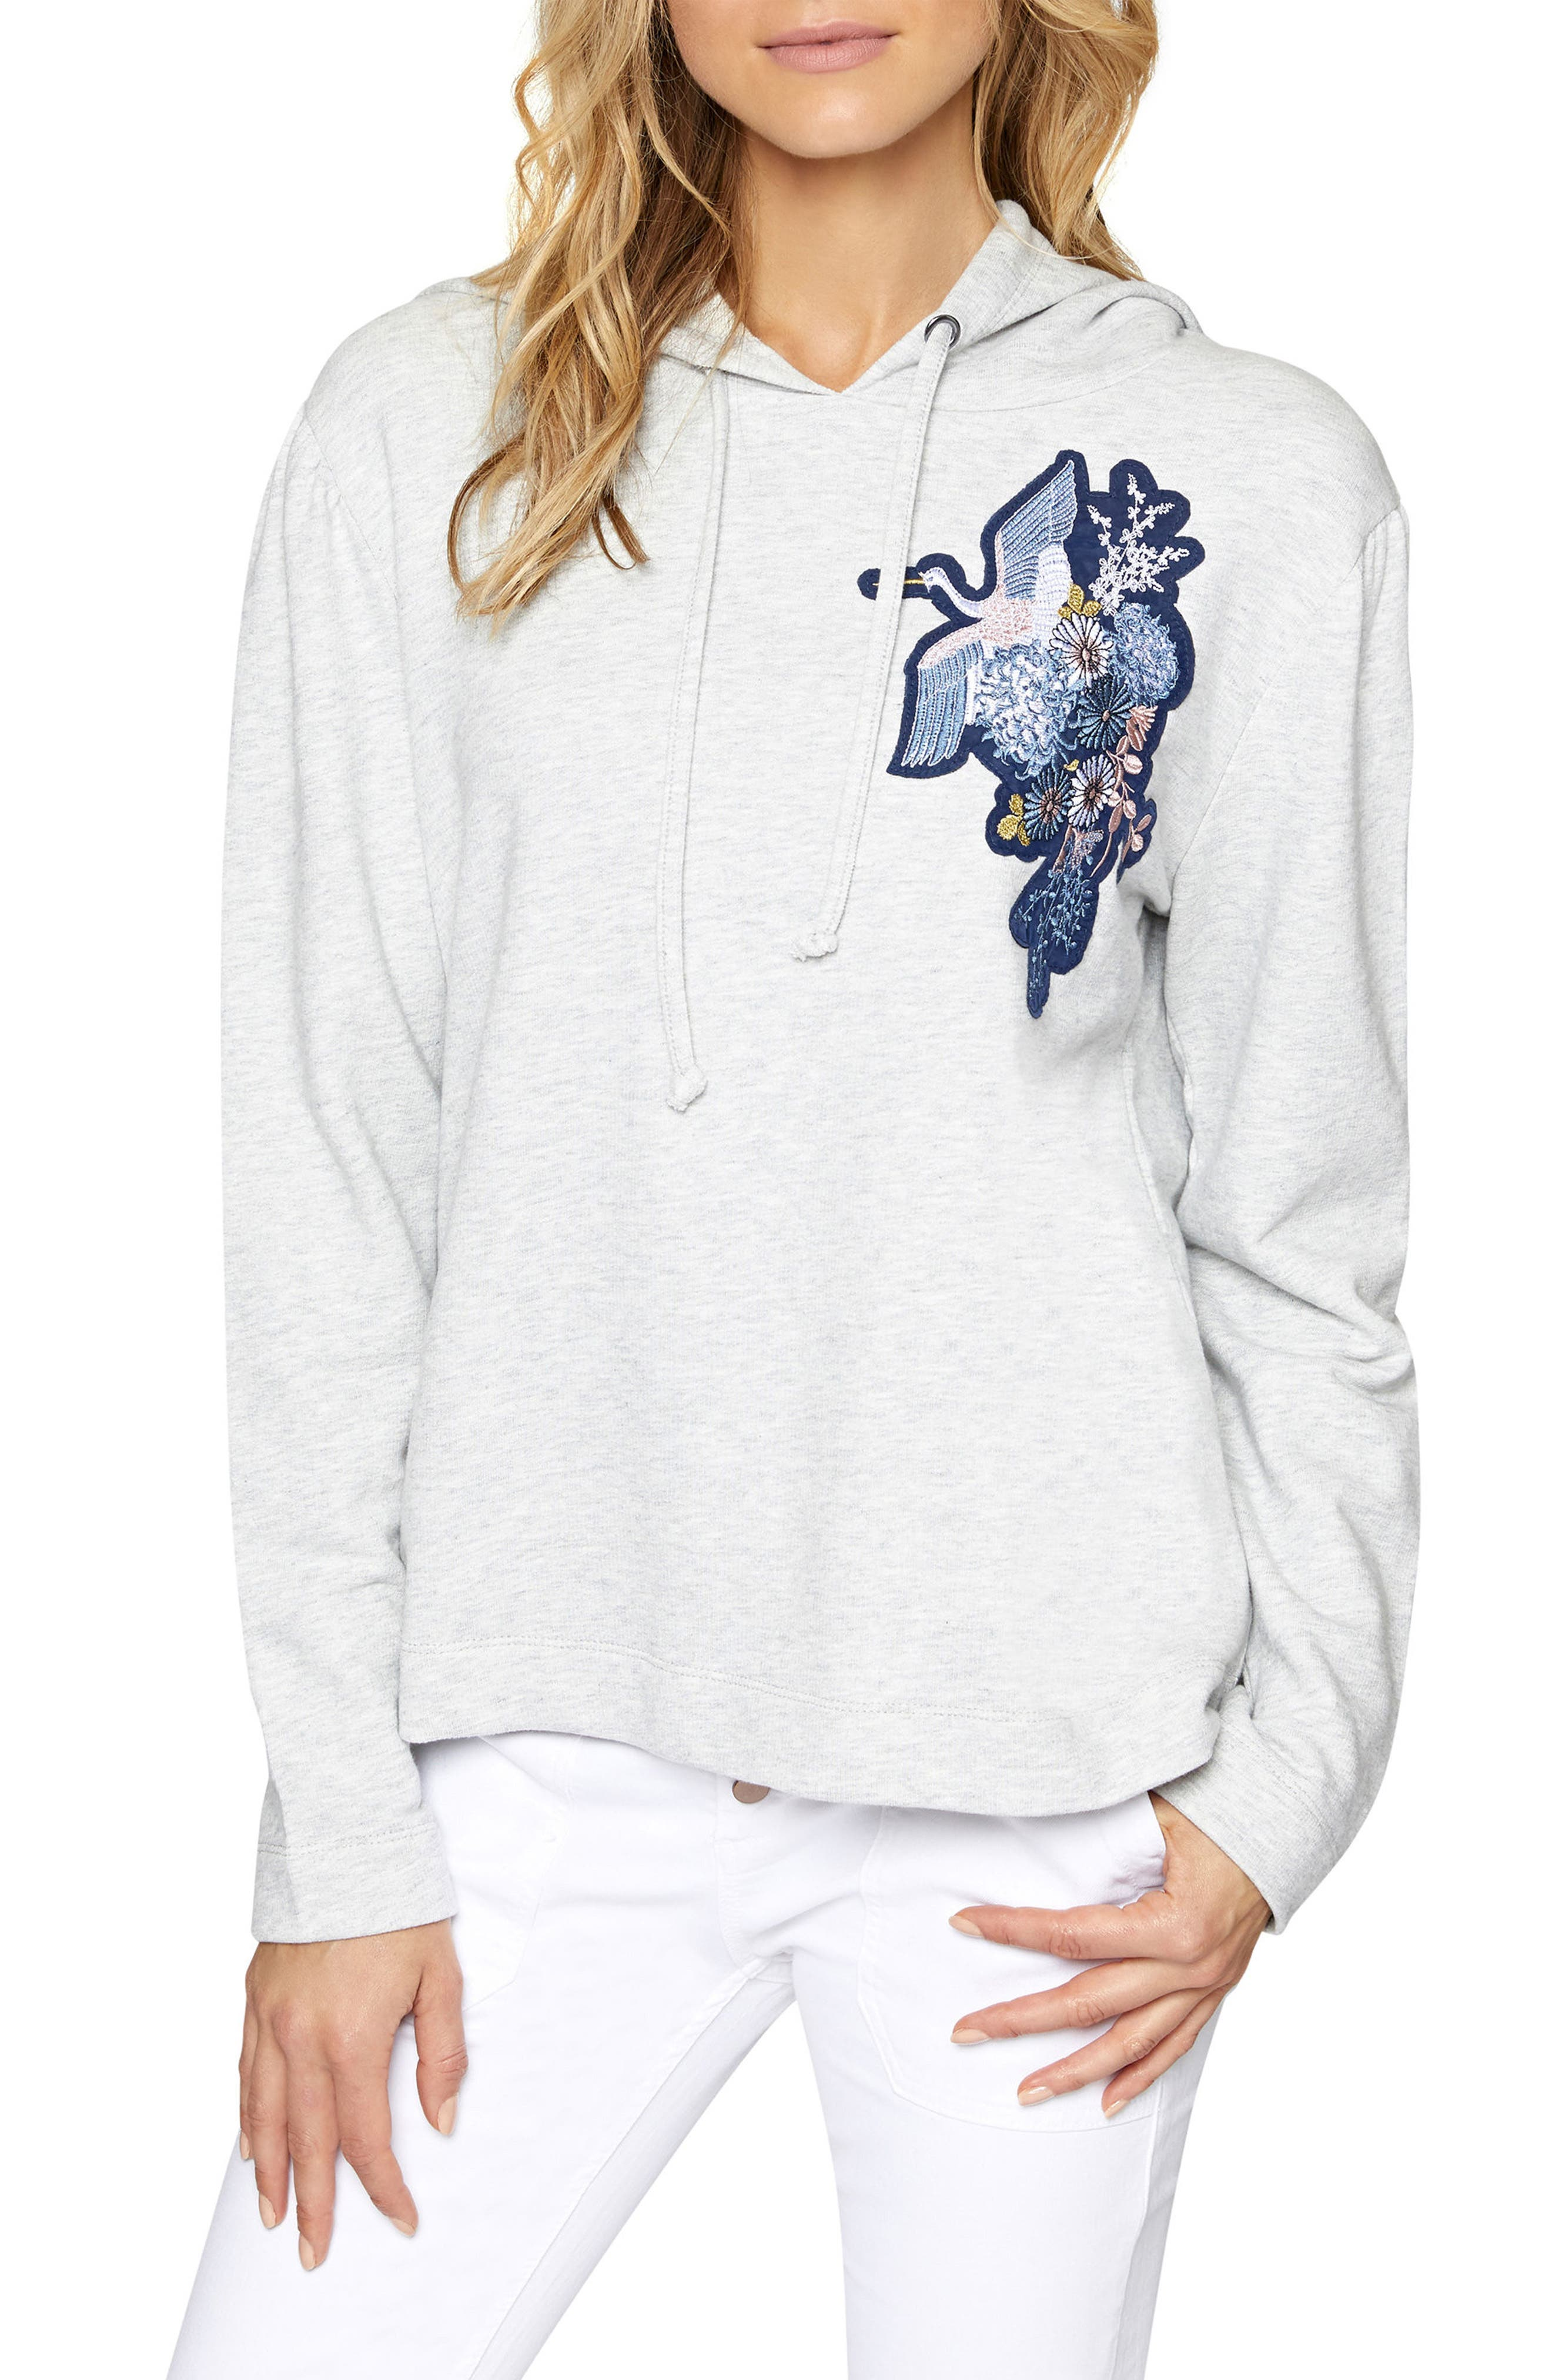 Main Image - Sanctuary Crane Hooded Sweatshirt